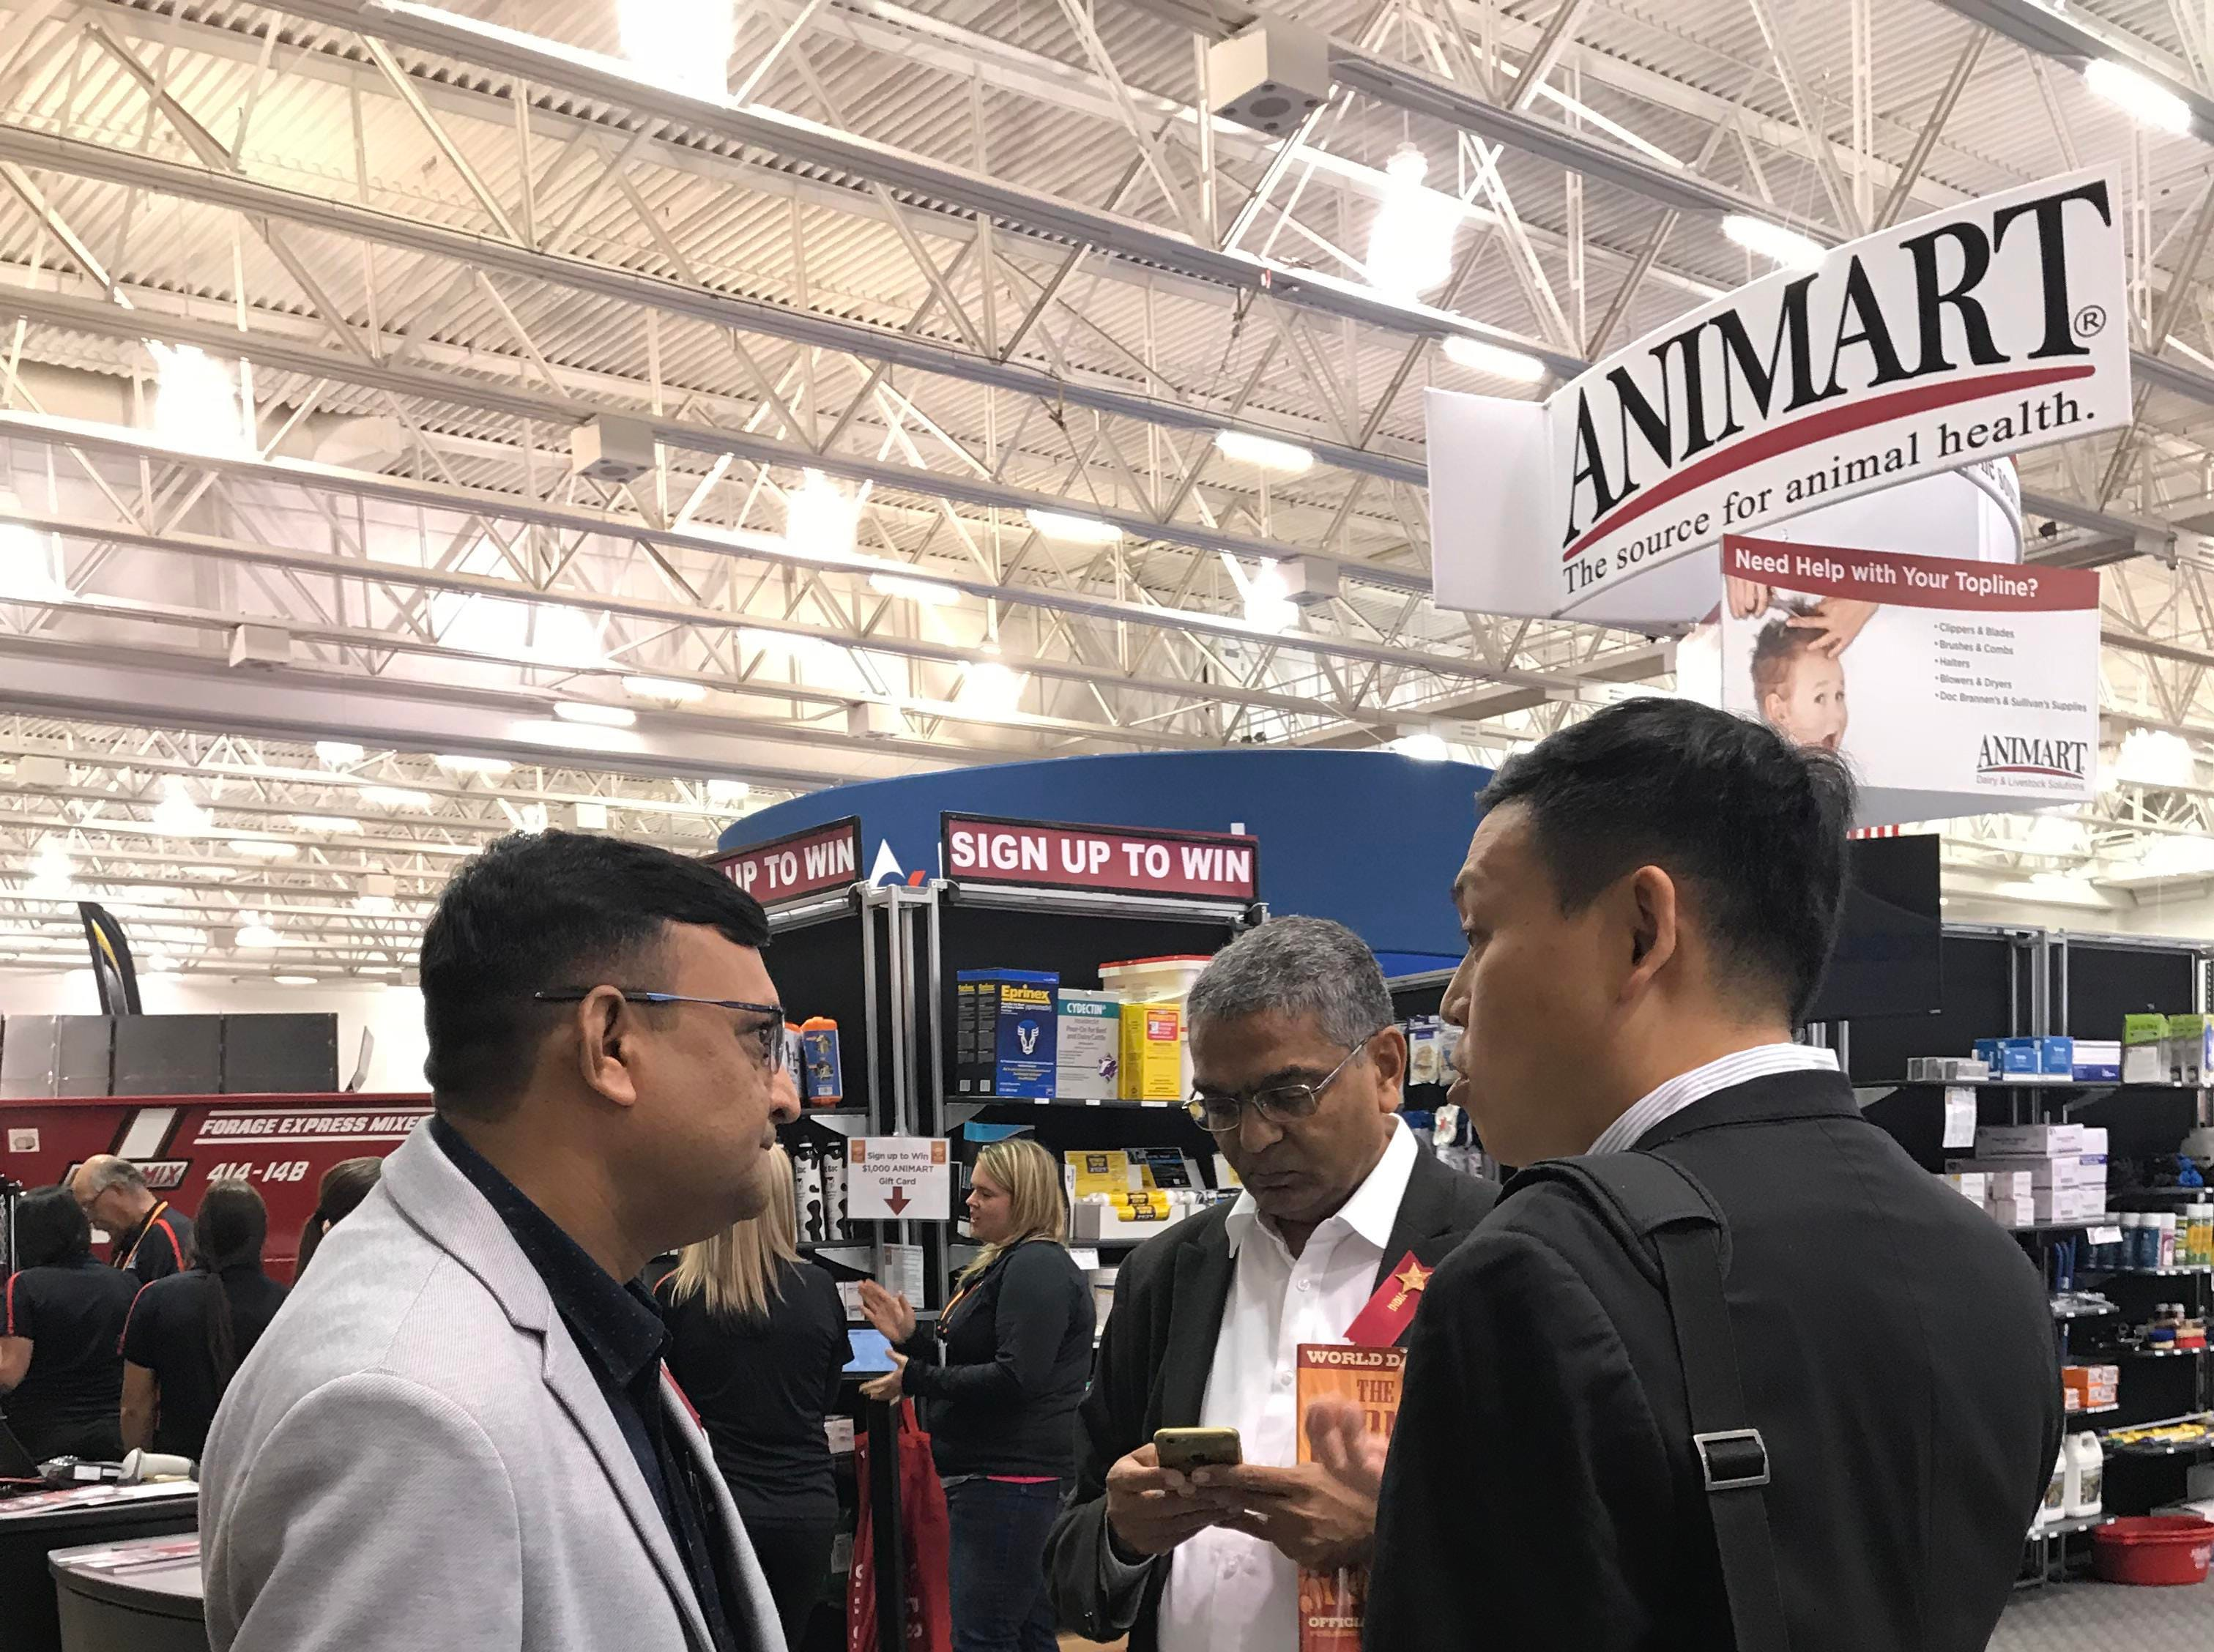 International visitors check out the Trade Show inside the Exhibition Hall.